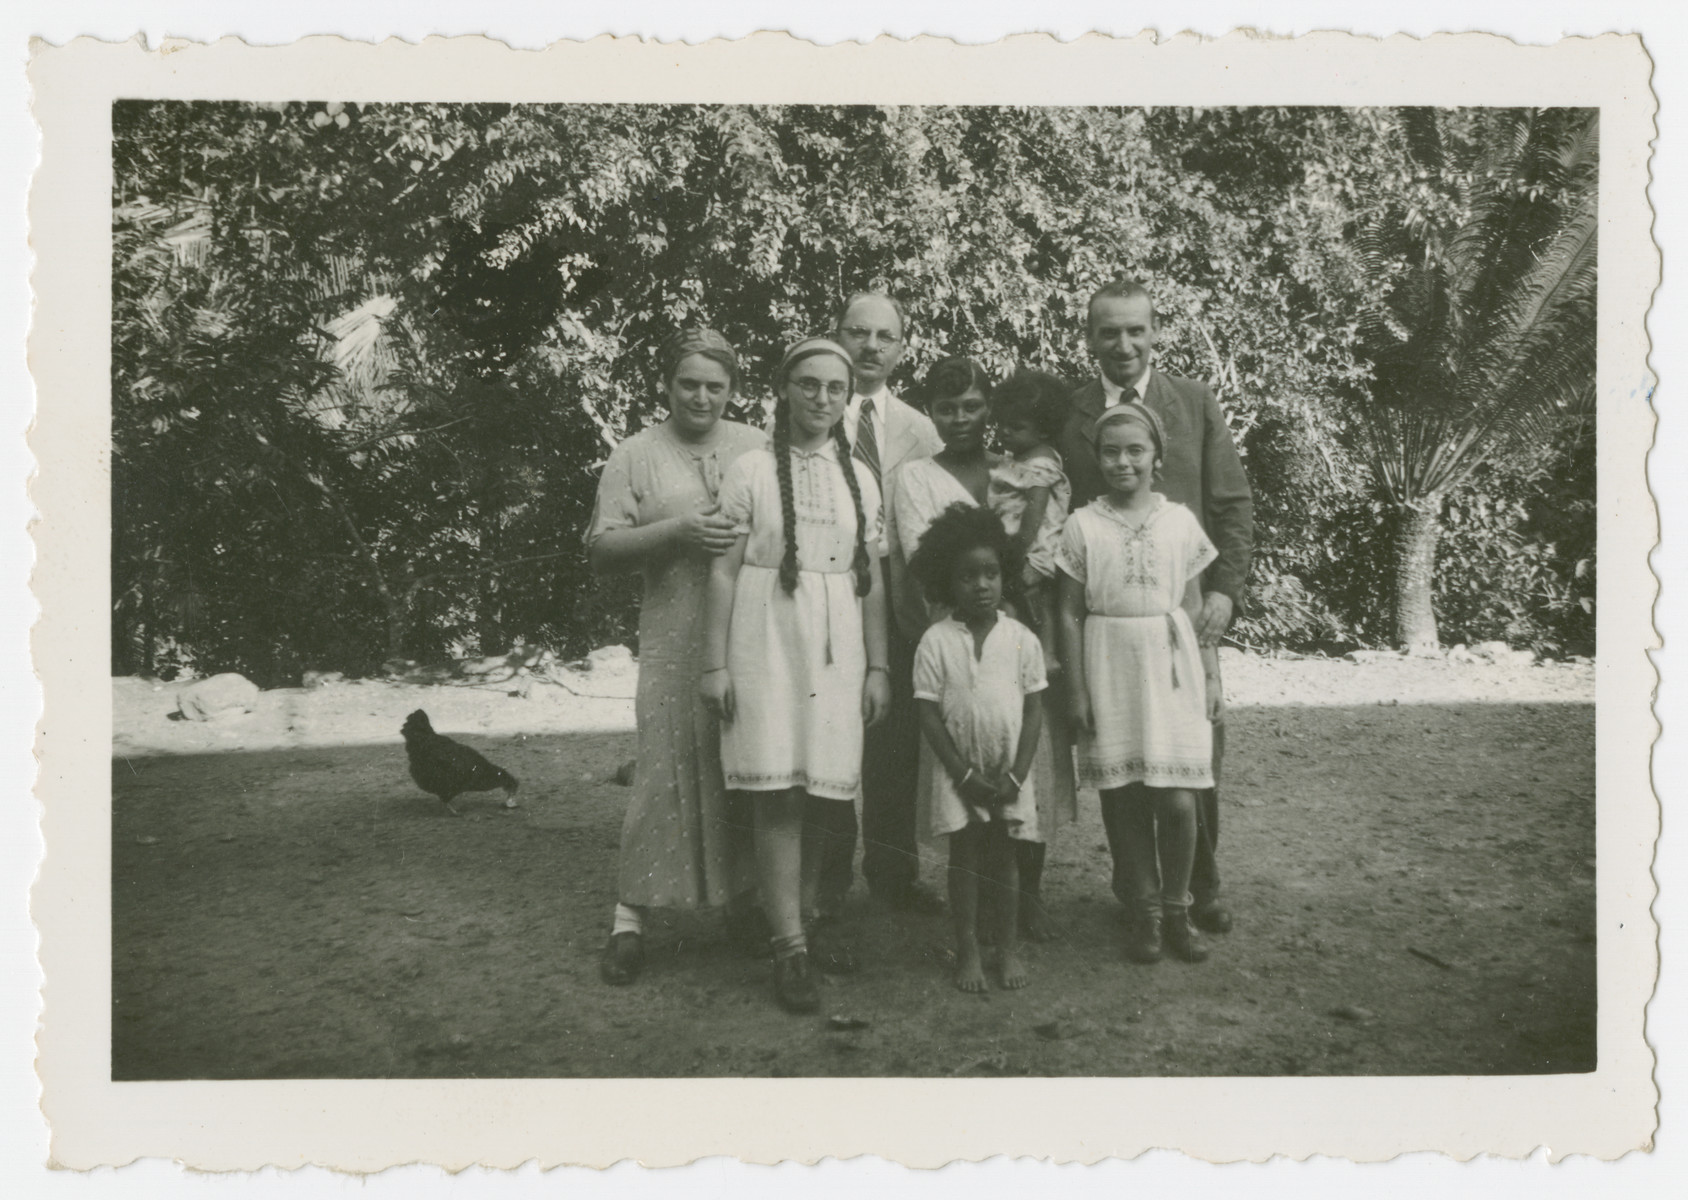 The Tauschers, (Austrian Jewish refugees)  pose with a Trinidadian family.